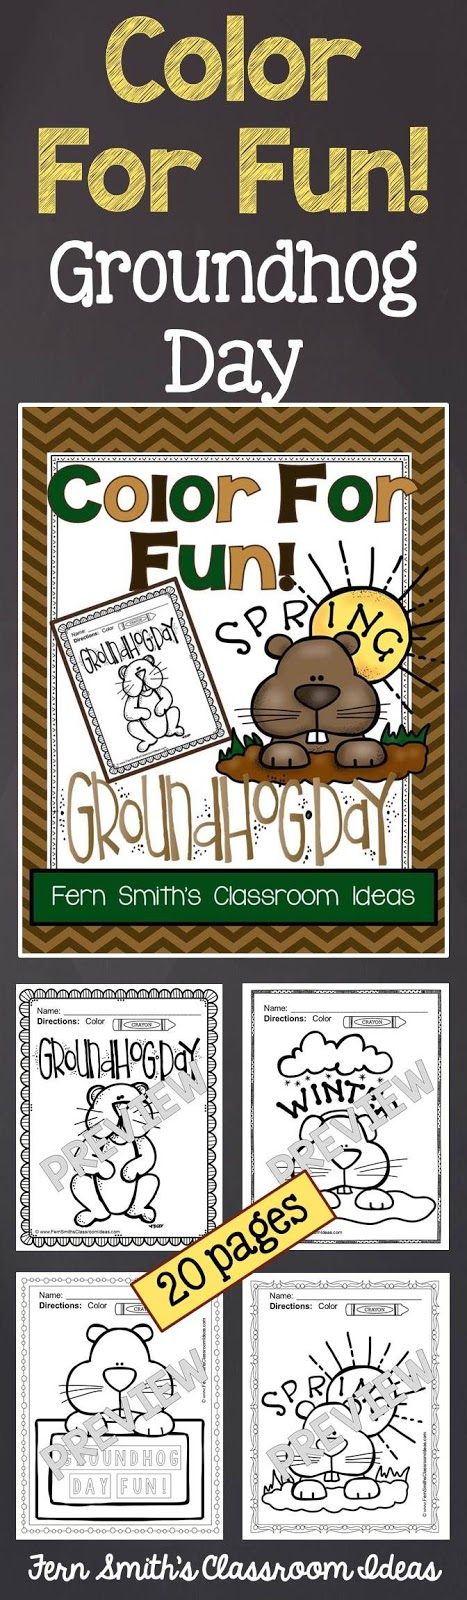 Fern Smith's Classroom Ideas Classroom Groundhog Day Fun! Color For Fun Printable Coloring Pages